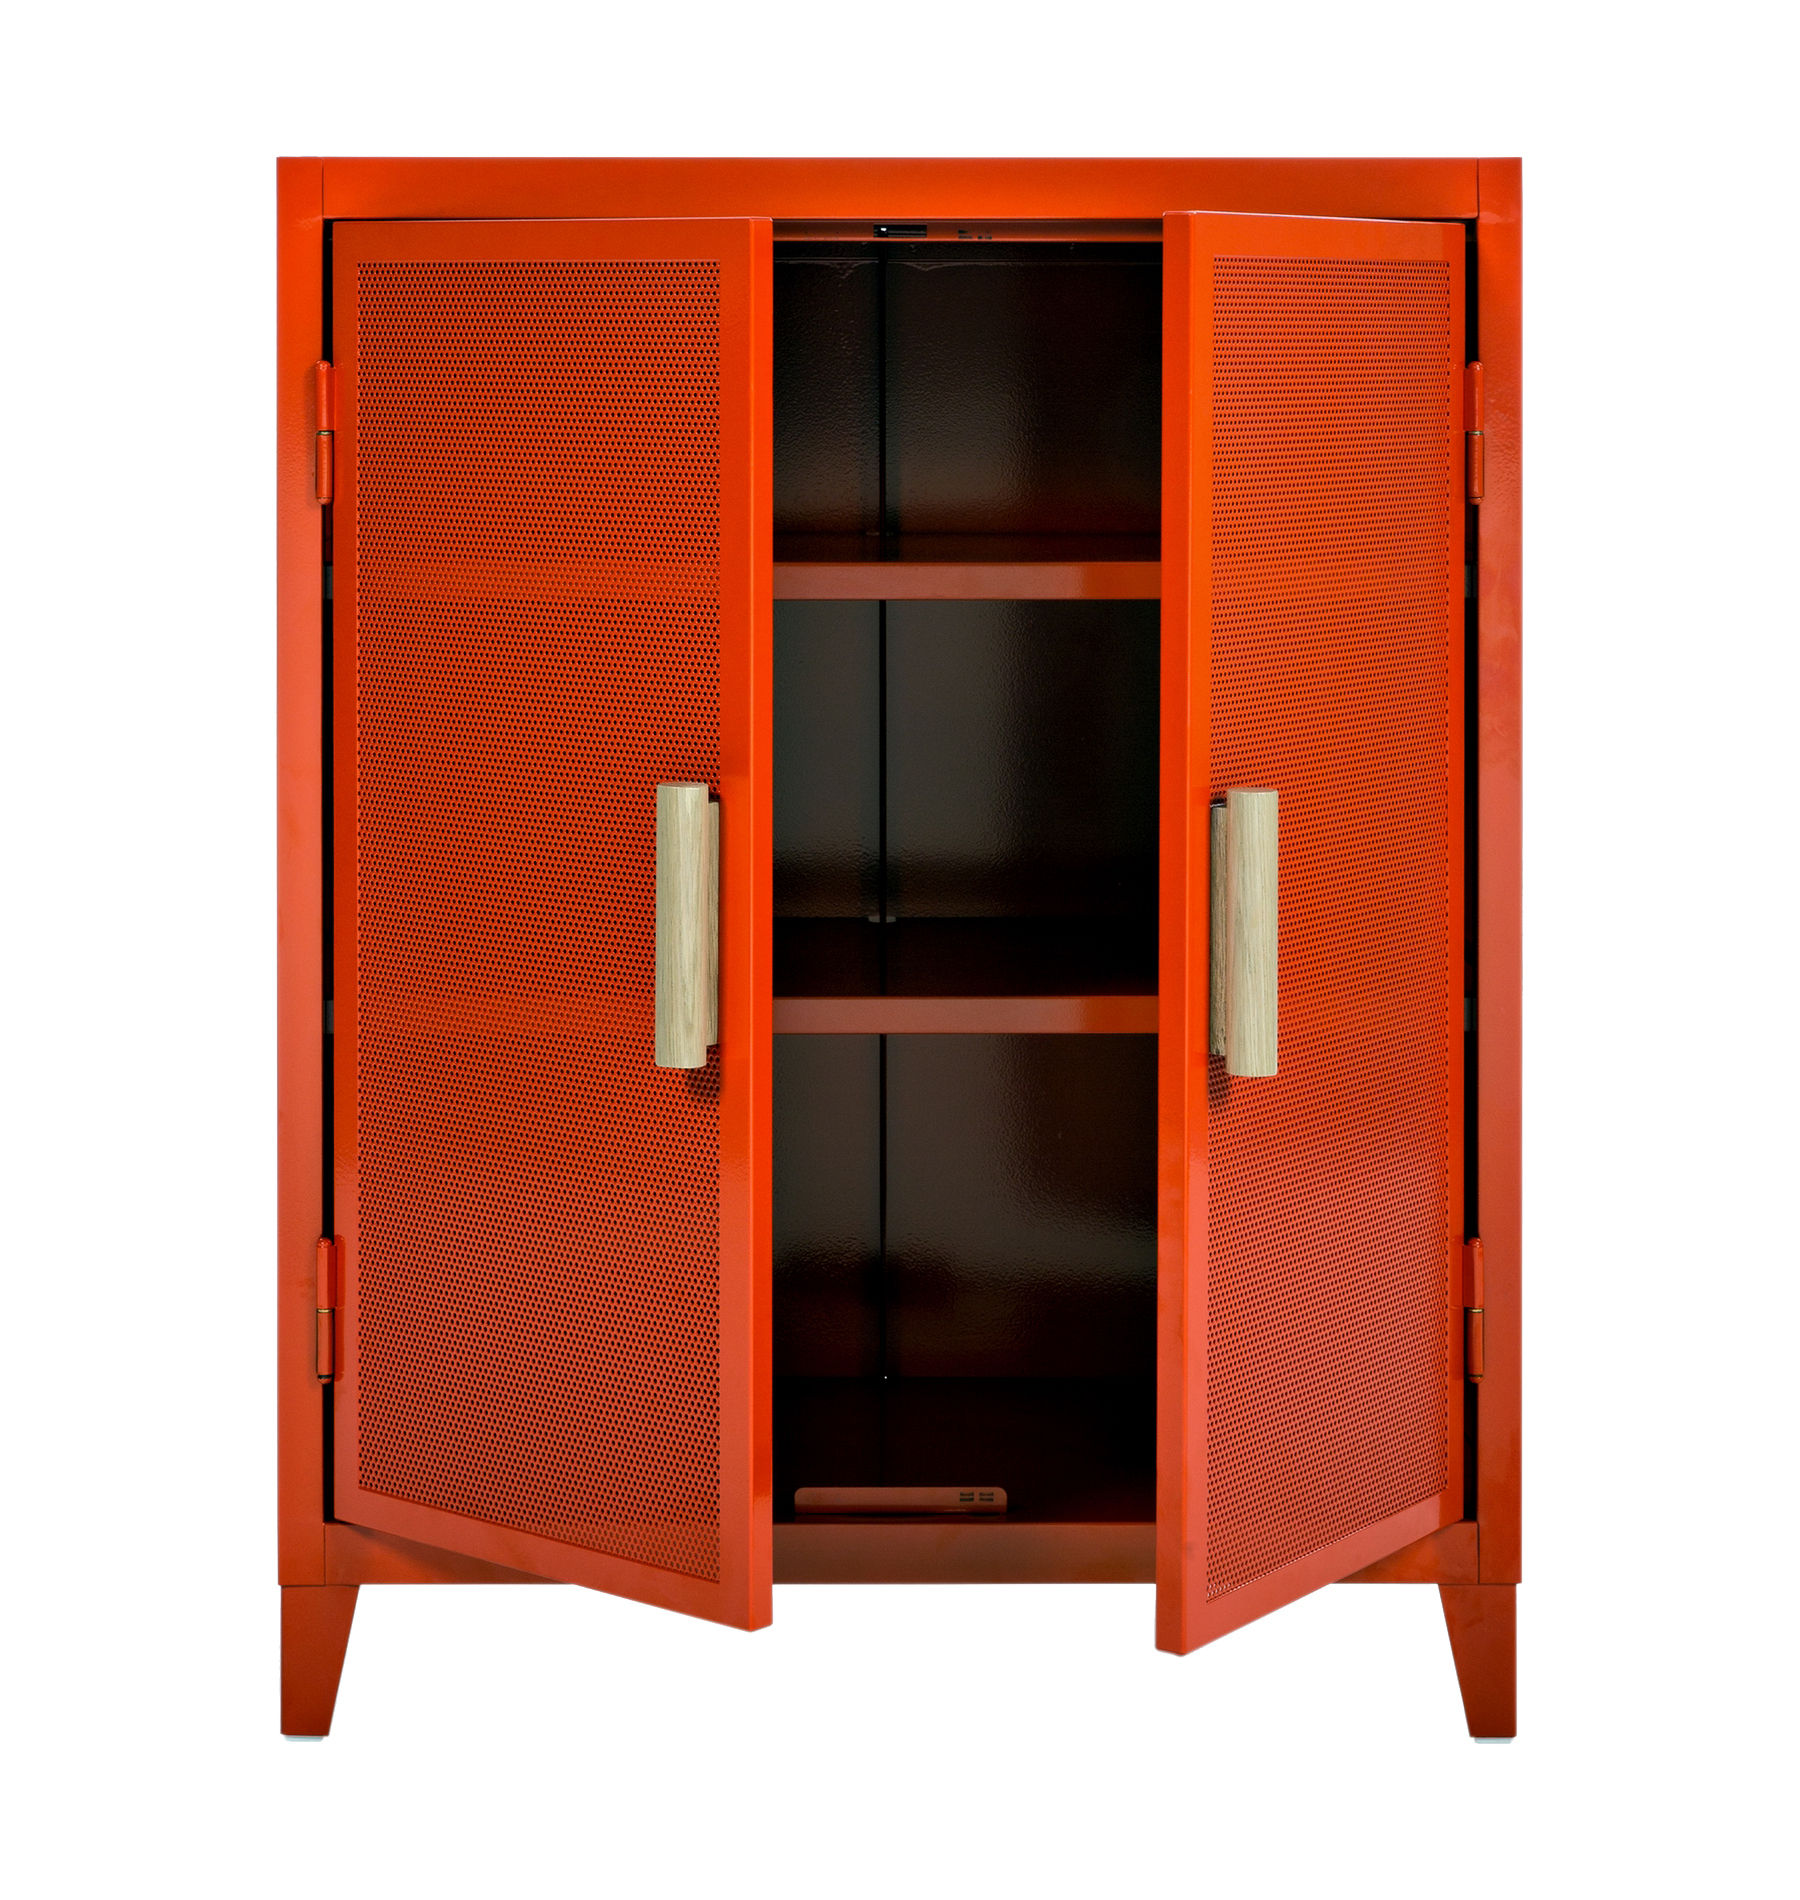 Rangement Vestiaire Rangement Vestiaire Bas Perforé Tolix - Orange | Made In